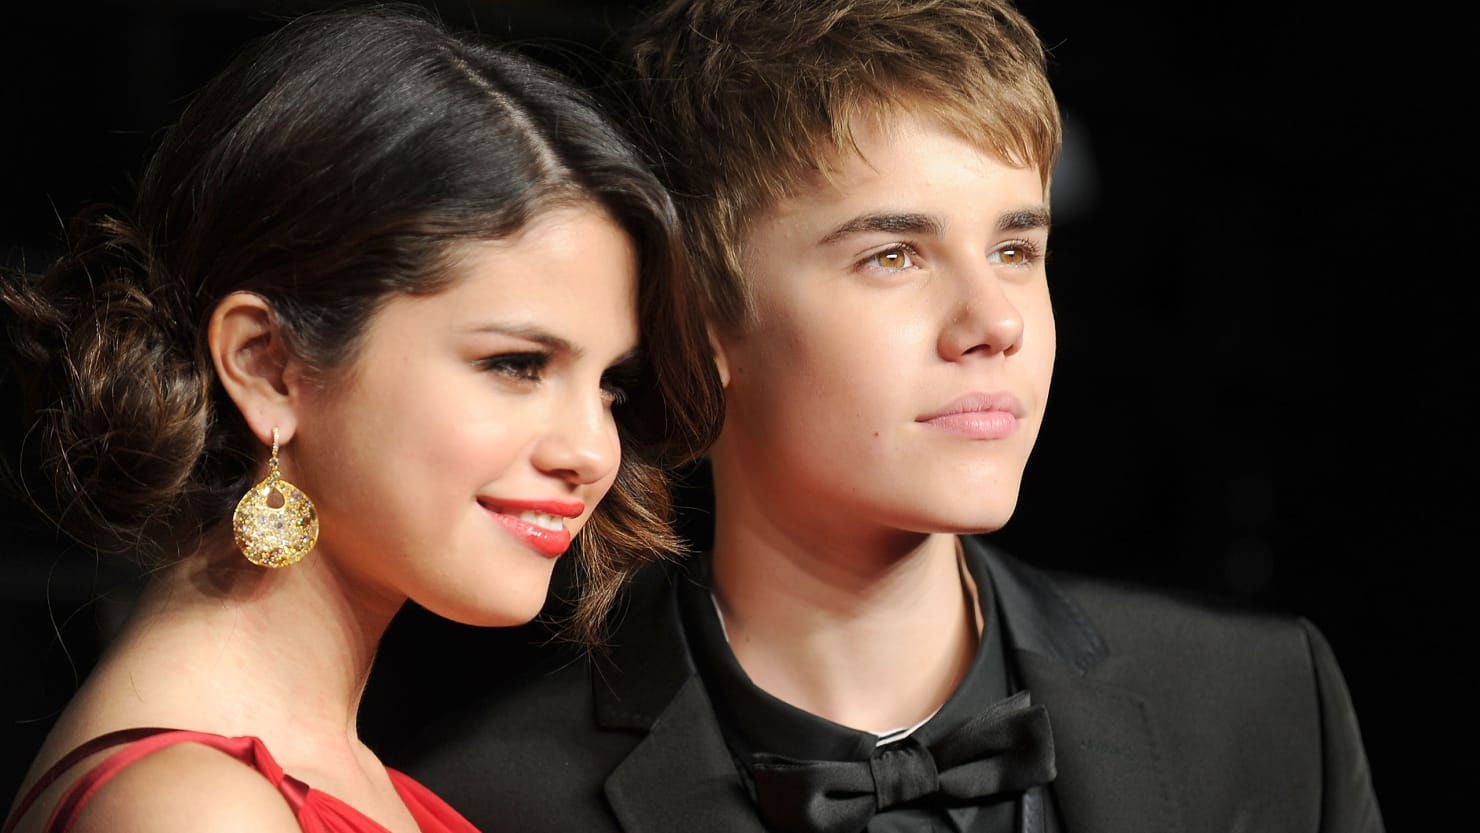 Is selena gomez dating justin bieber against abortion